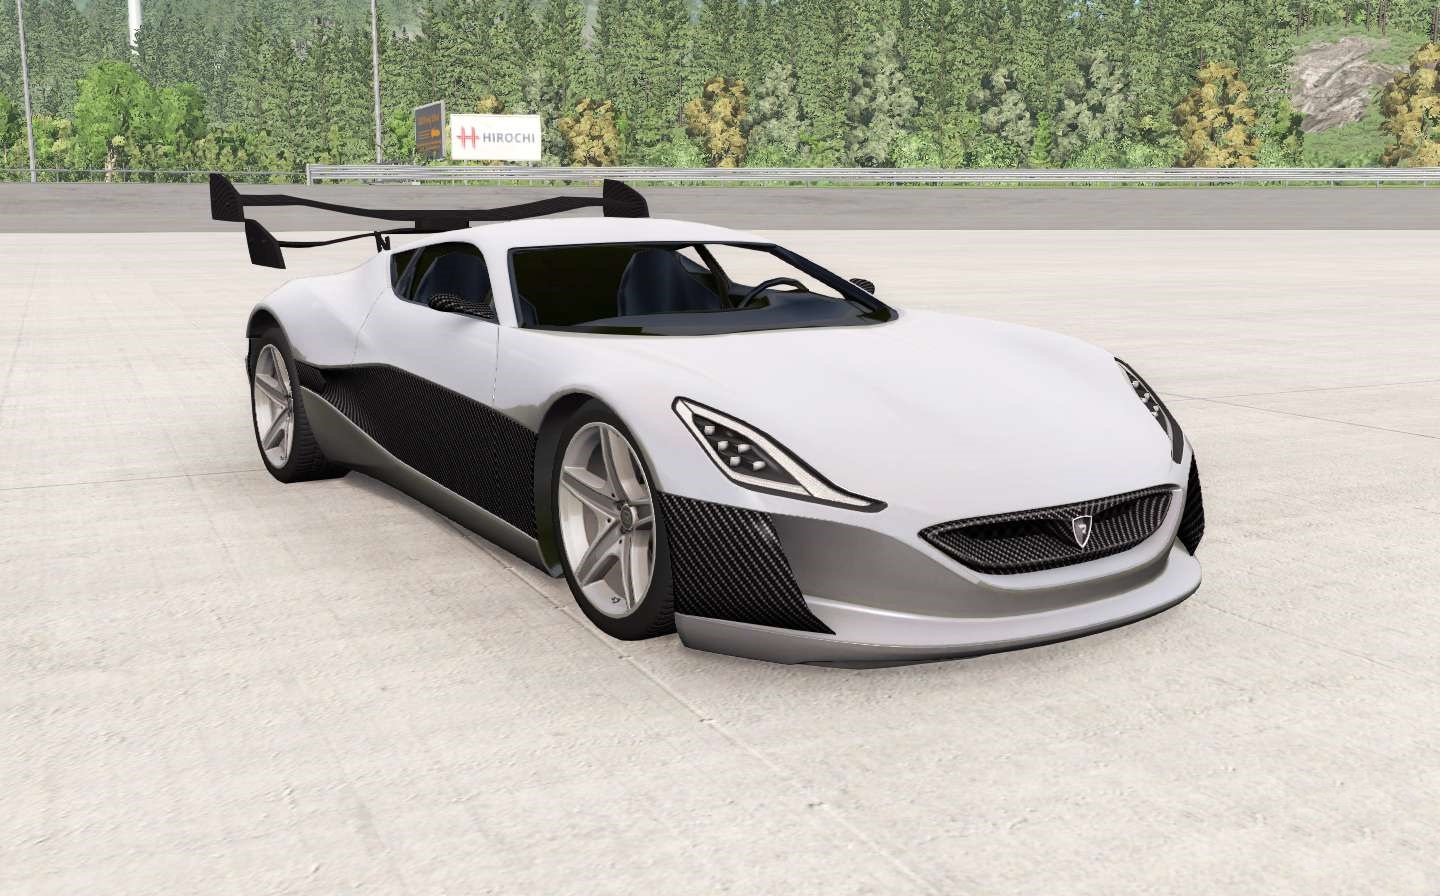 BeamNG - Rimac Concept One Car Mod